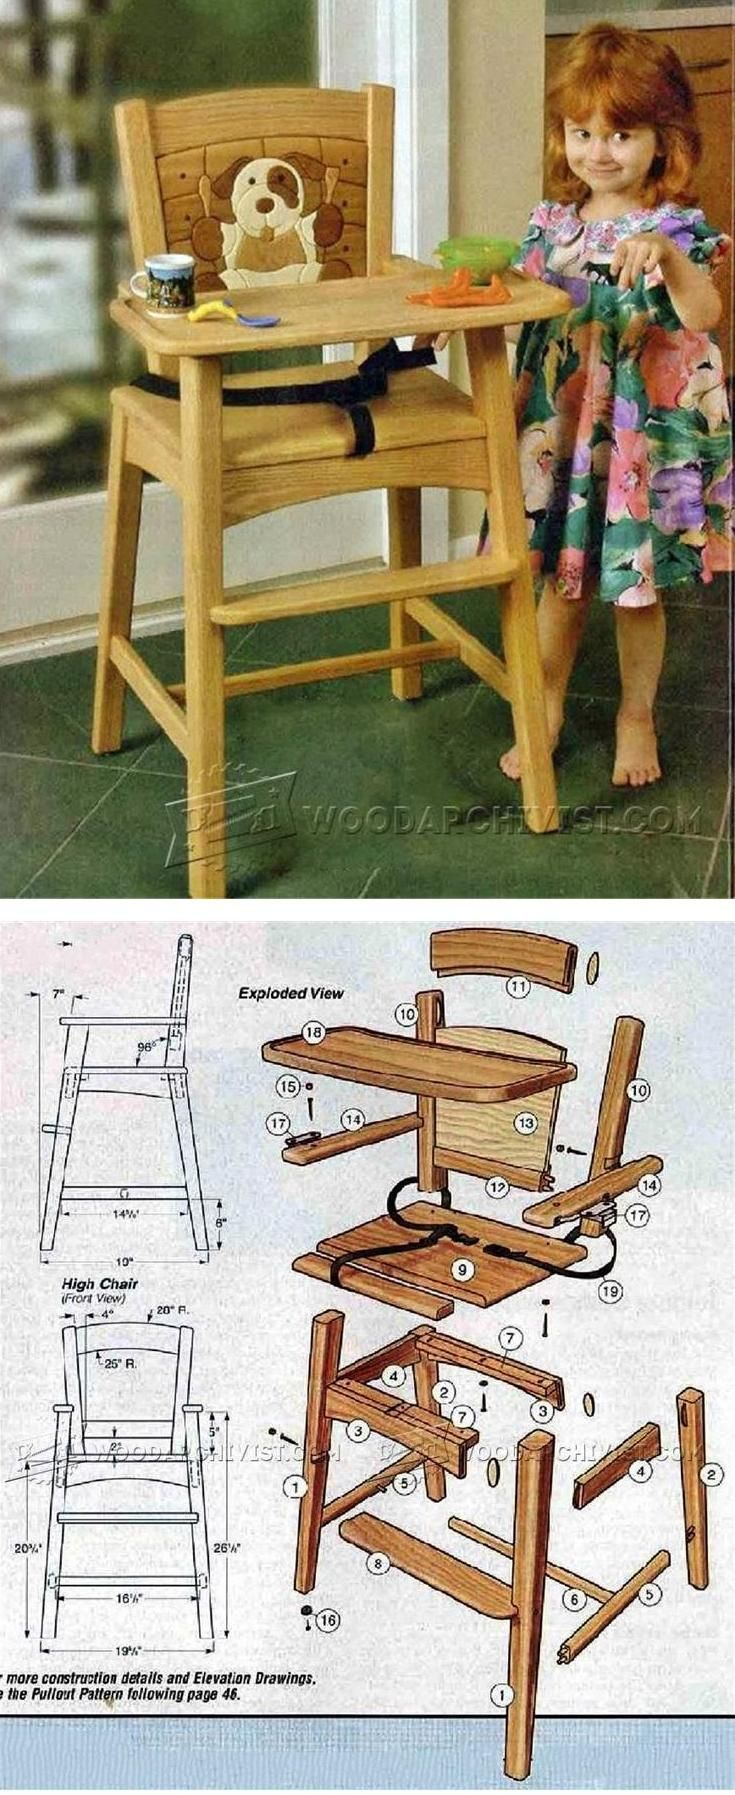 wooden high chair plans - children's furniture plans and